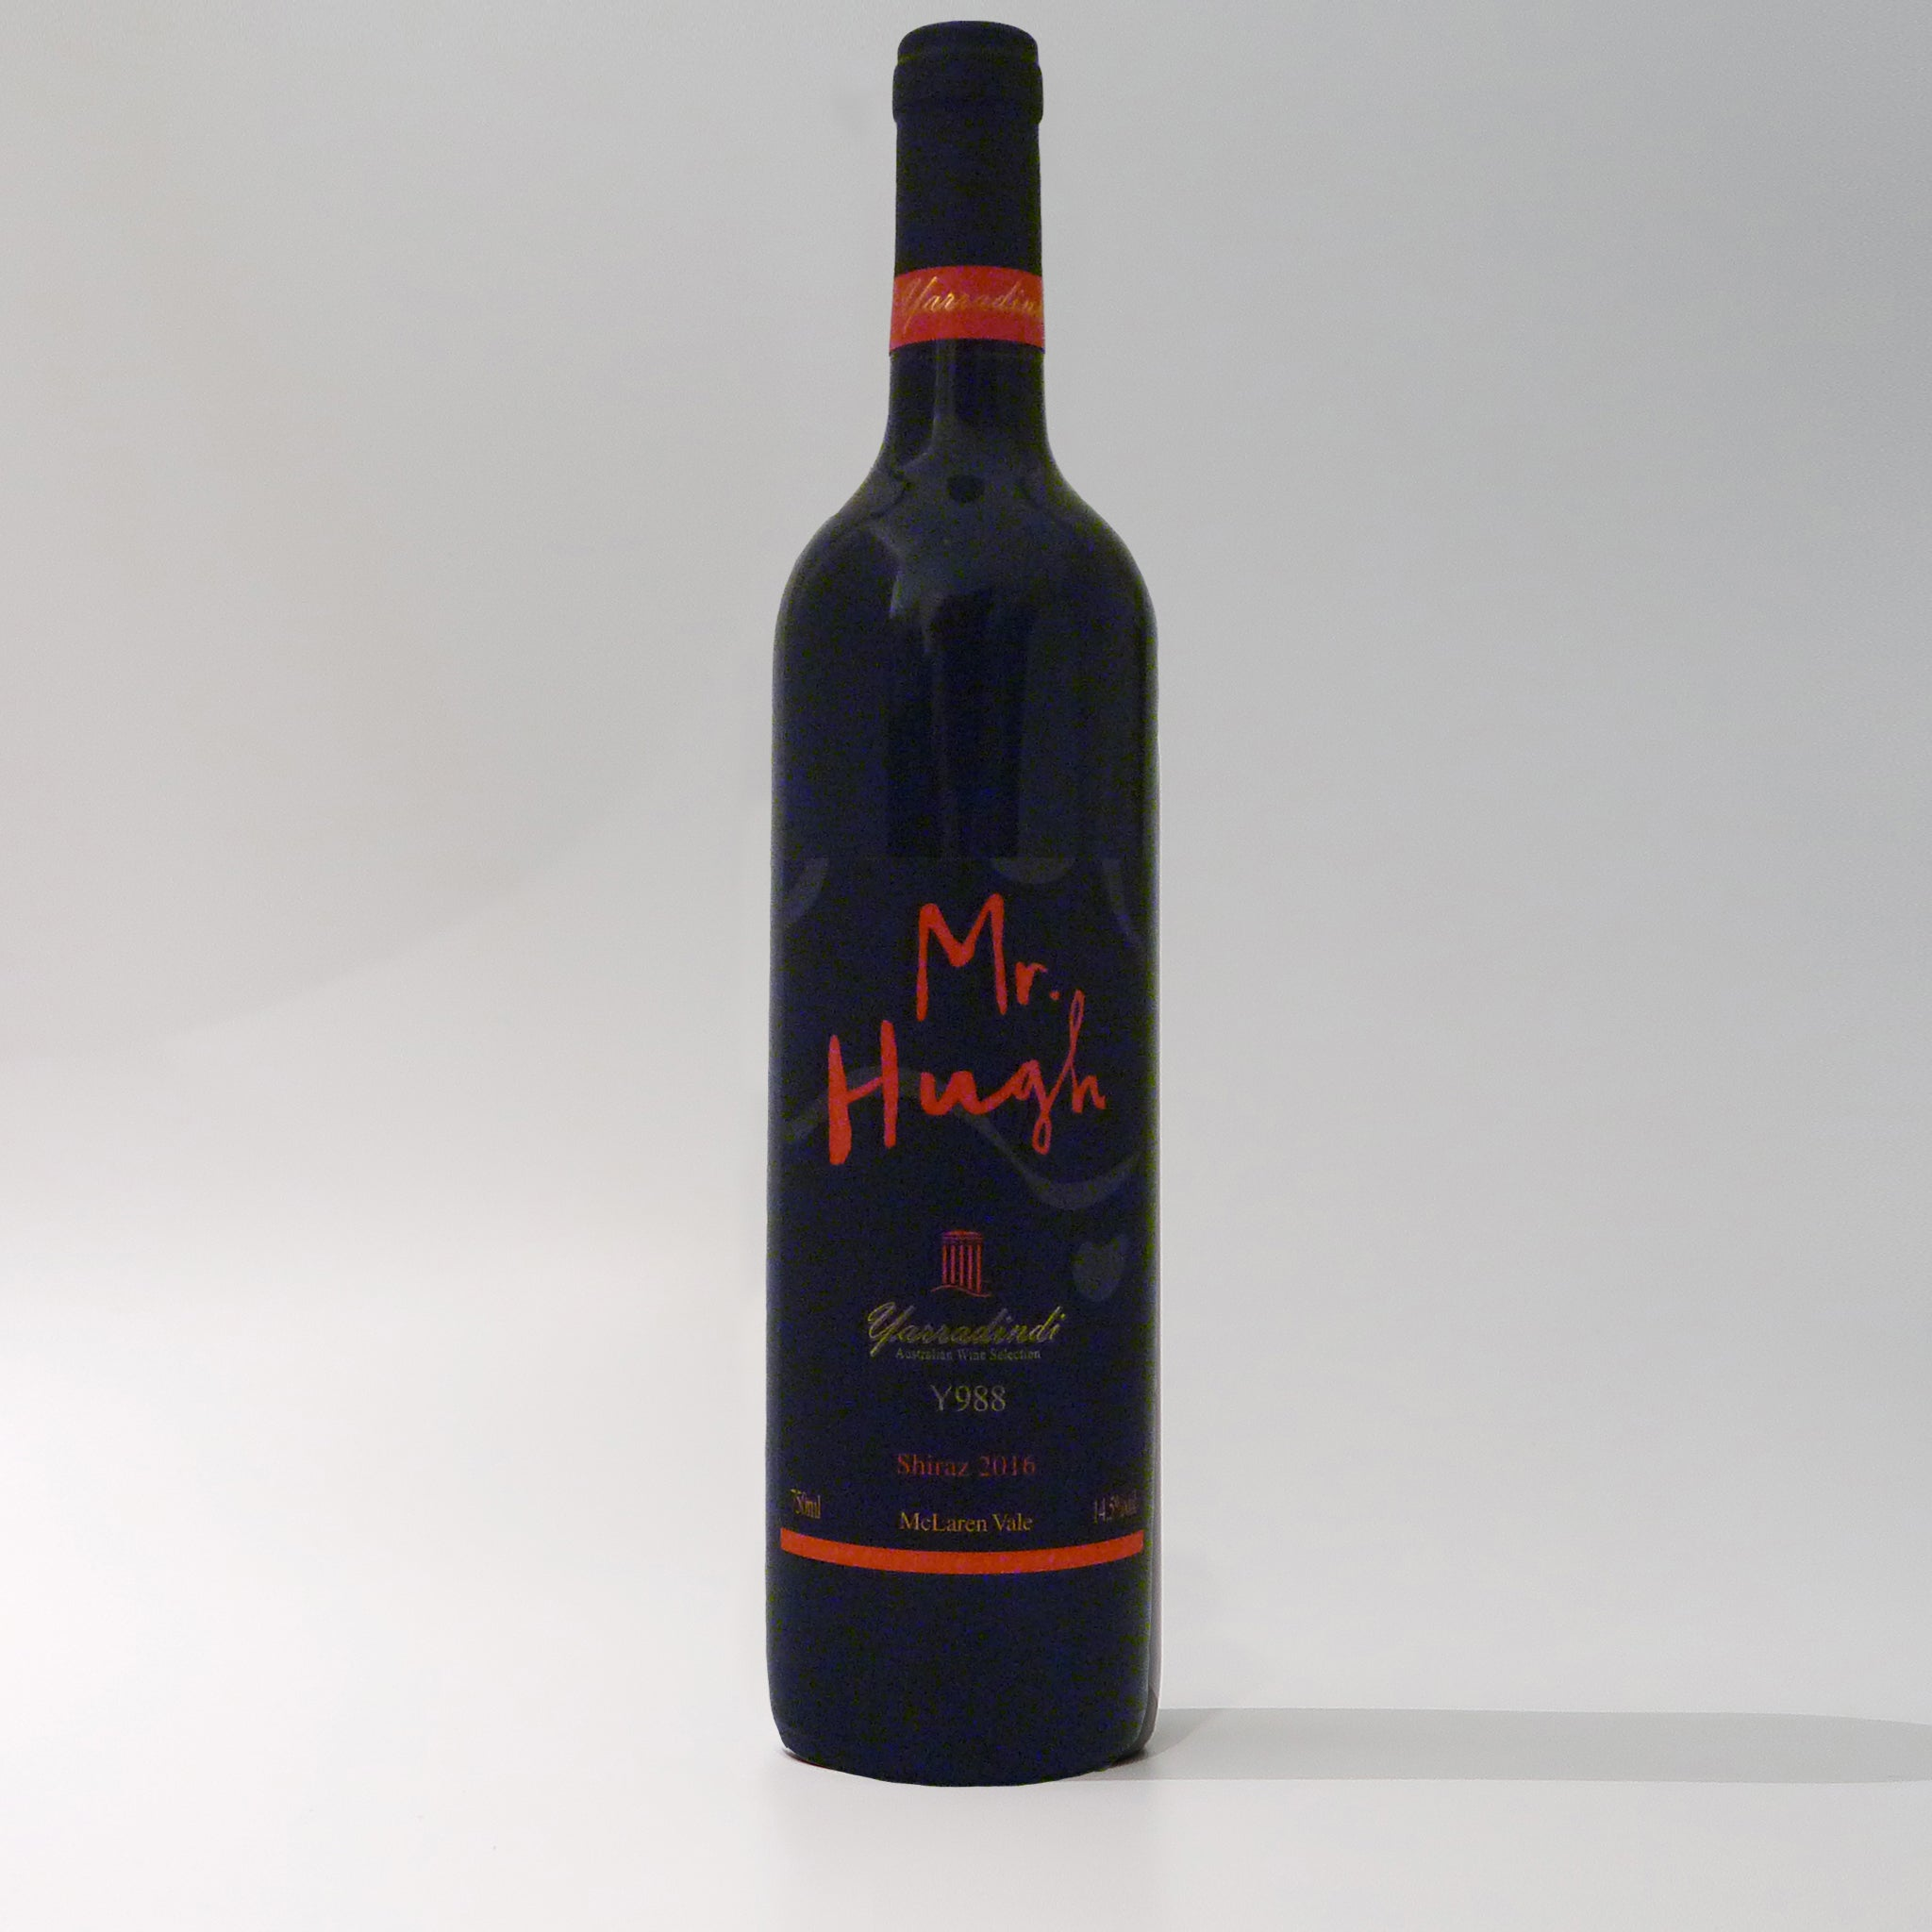 Mr Hugh McLaren Vale Shiraz 2016 China Label (6 bottels)